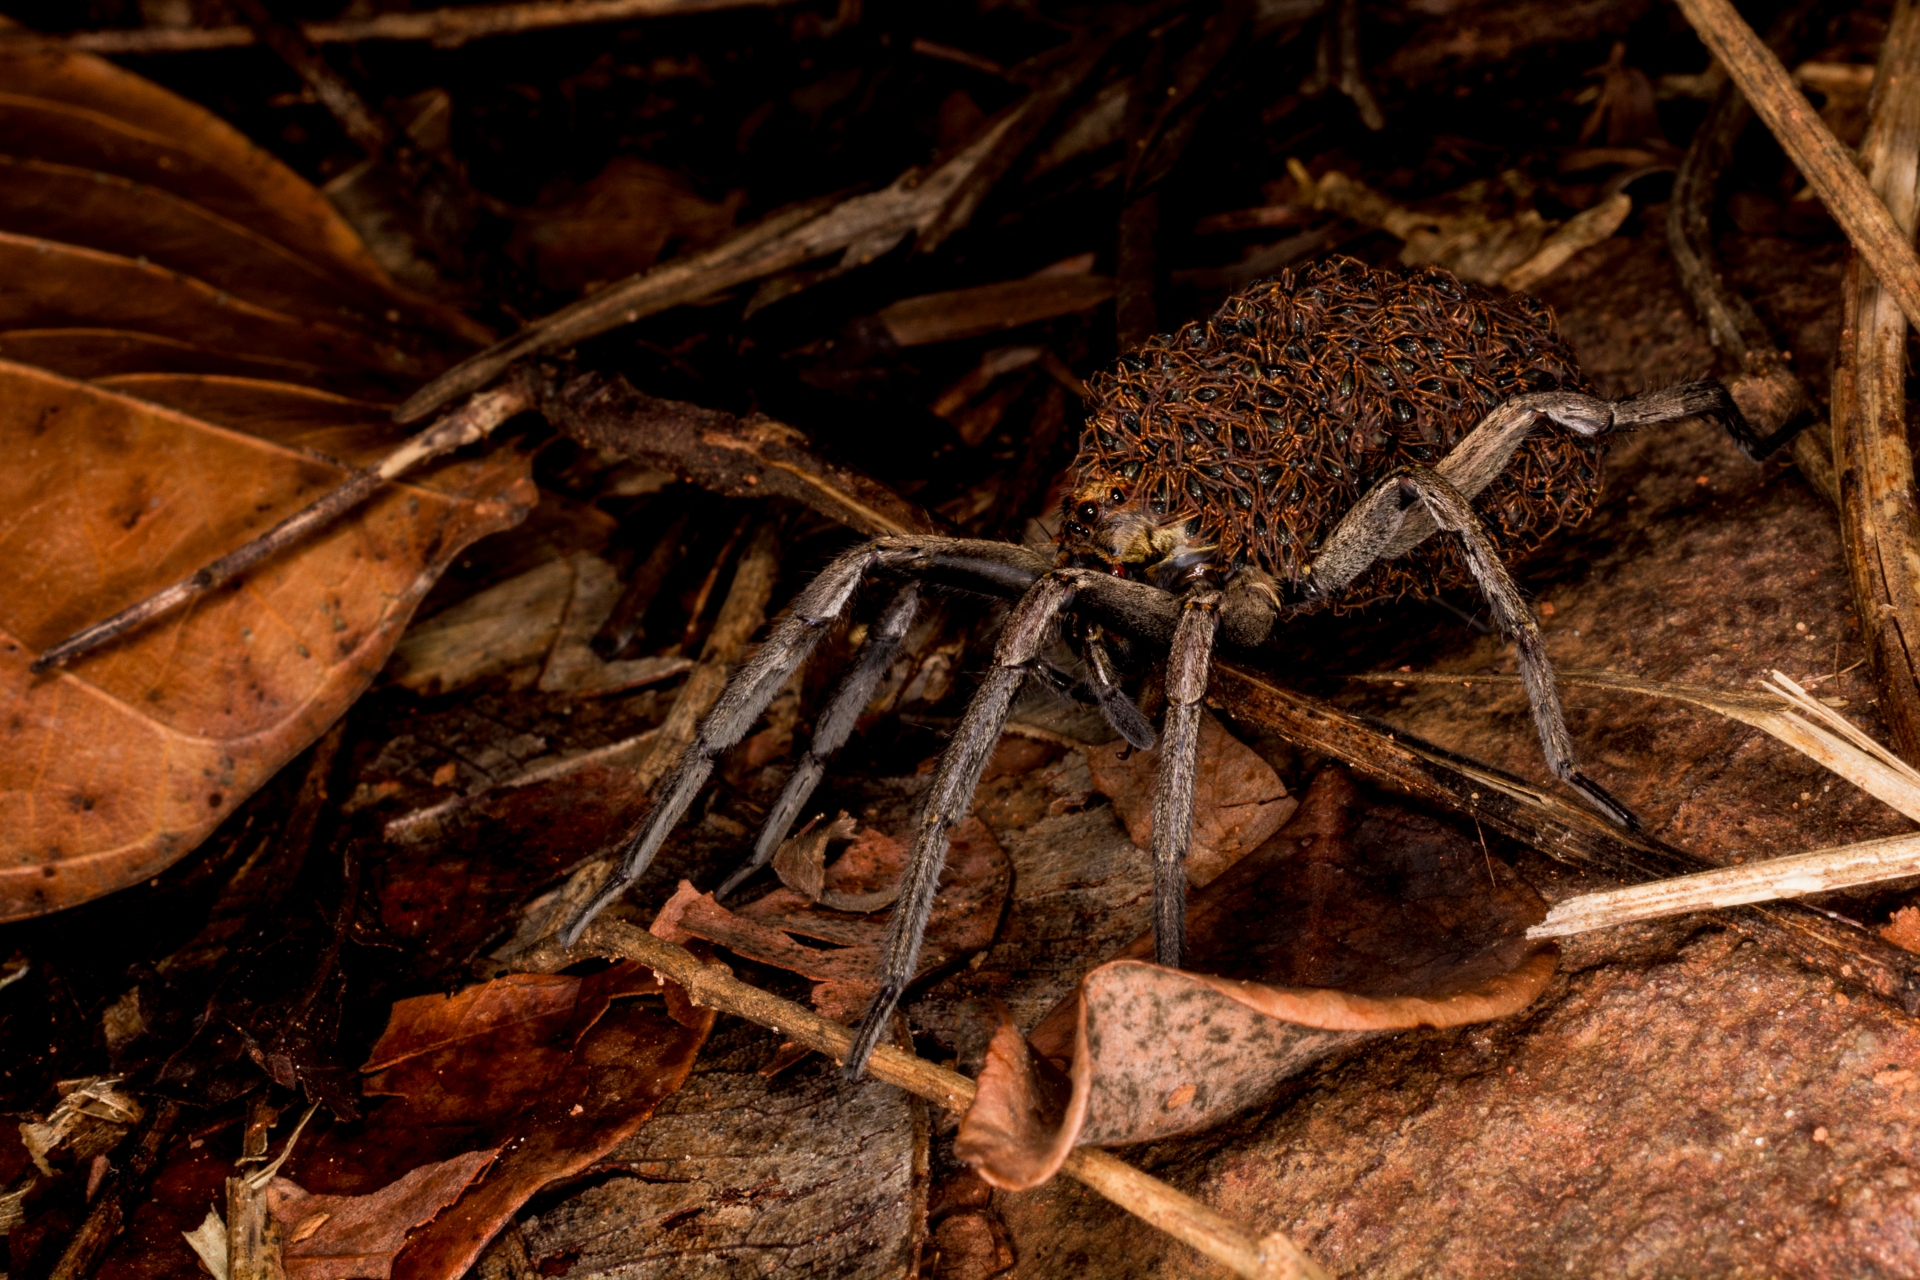 The author had the good fortune of spotting a mother wolf spider carrying hundreds of spiderlings on her back. Photo: Samuel John